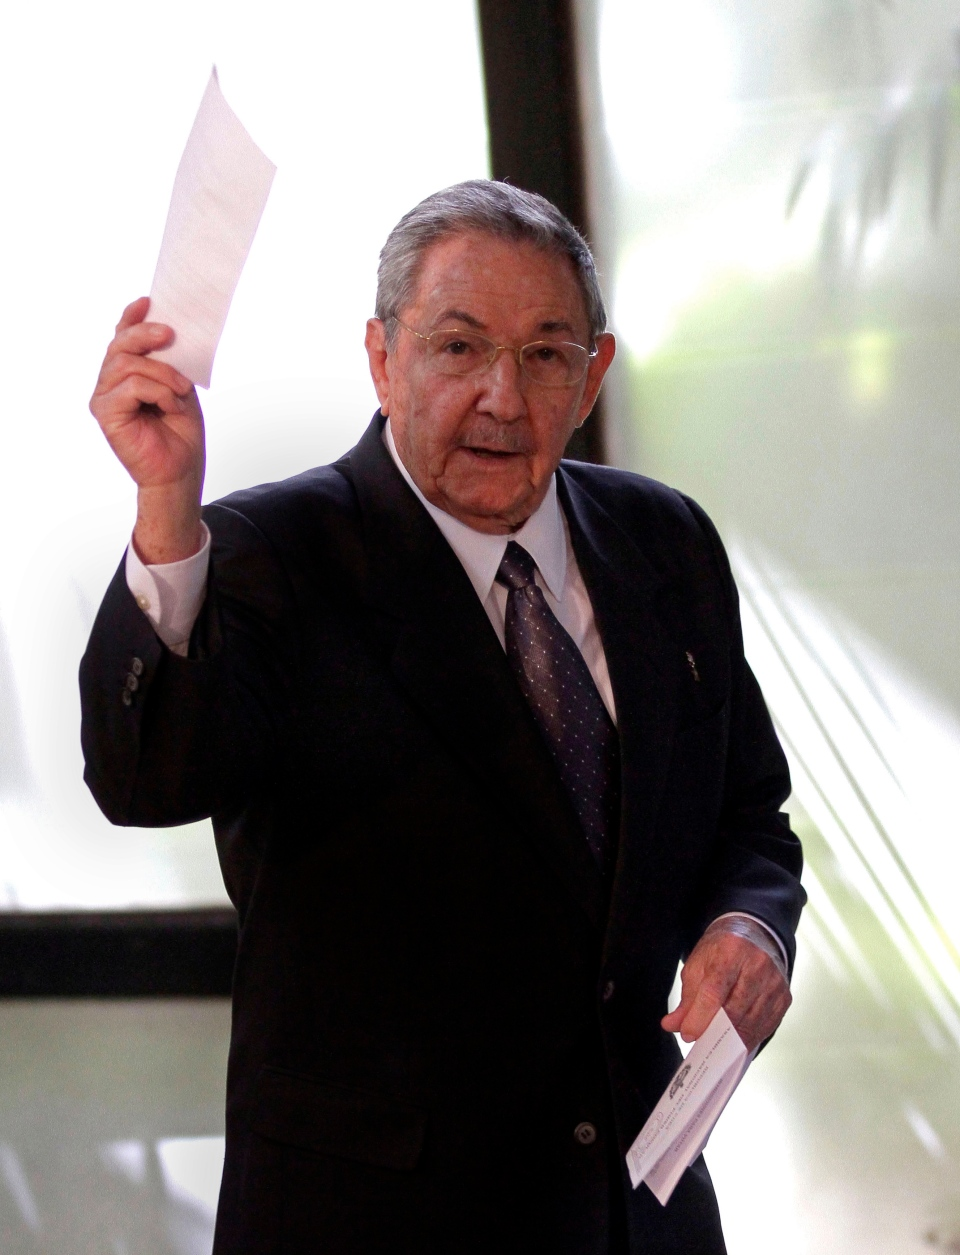 Cuba's President Raul Castro holds up the ballot of his brother Fidel, also present in the session, for president of the National Assembly during the opening session of the parliament in Havana, Cuba, Sunday, Feb. 24, 2012. (AP / Ismael Francisco, Cubadebate)